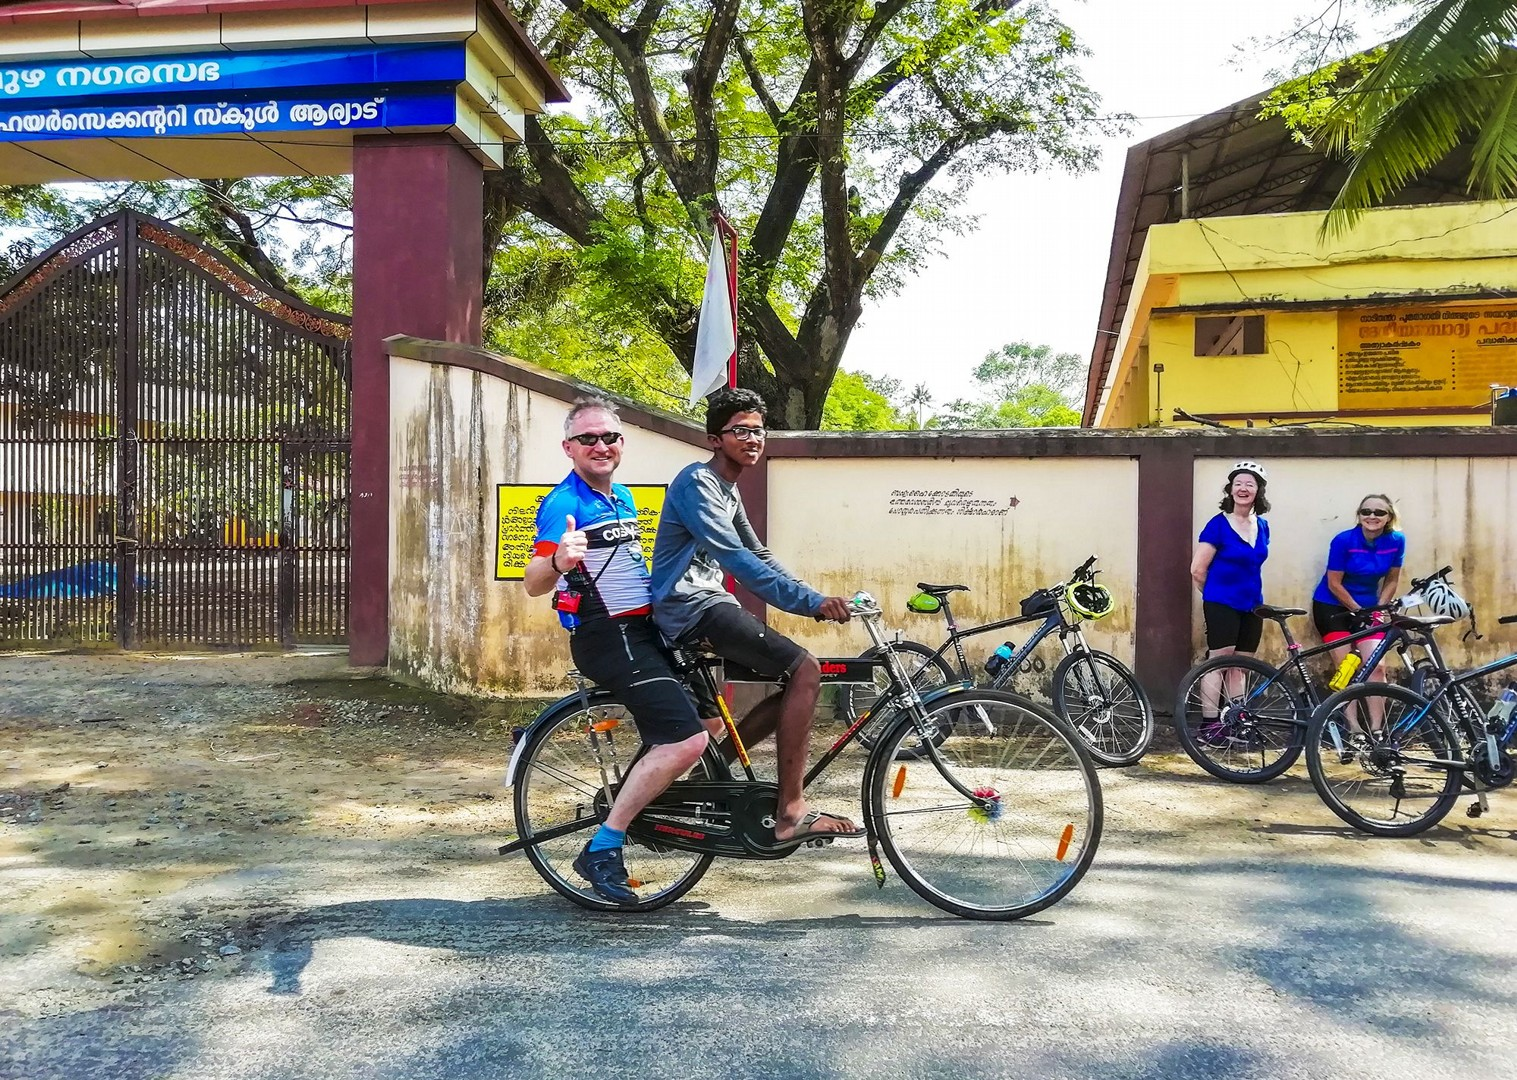 IMG_20181120_110730-2.jpg - India - Classic Kerala - Cycling Adventures